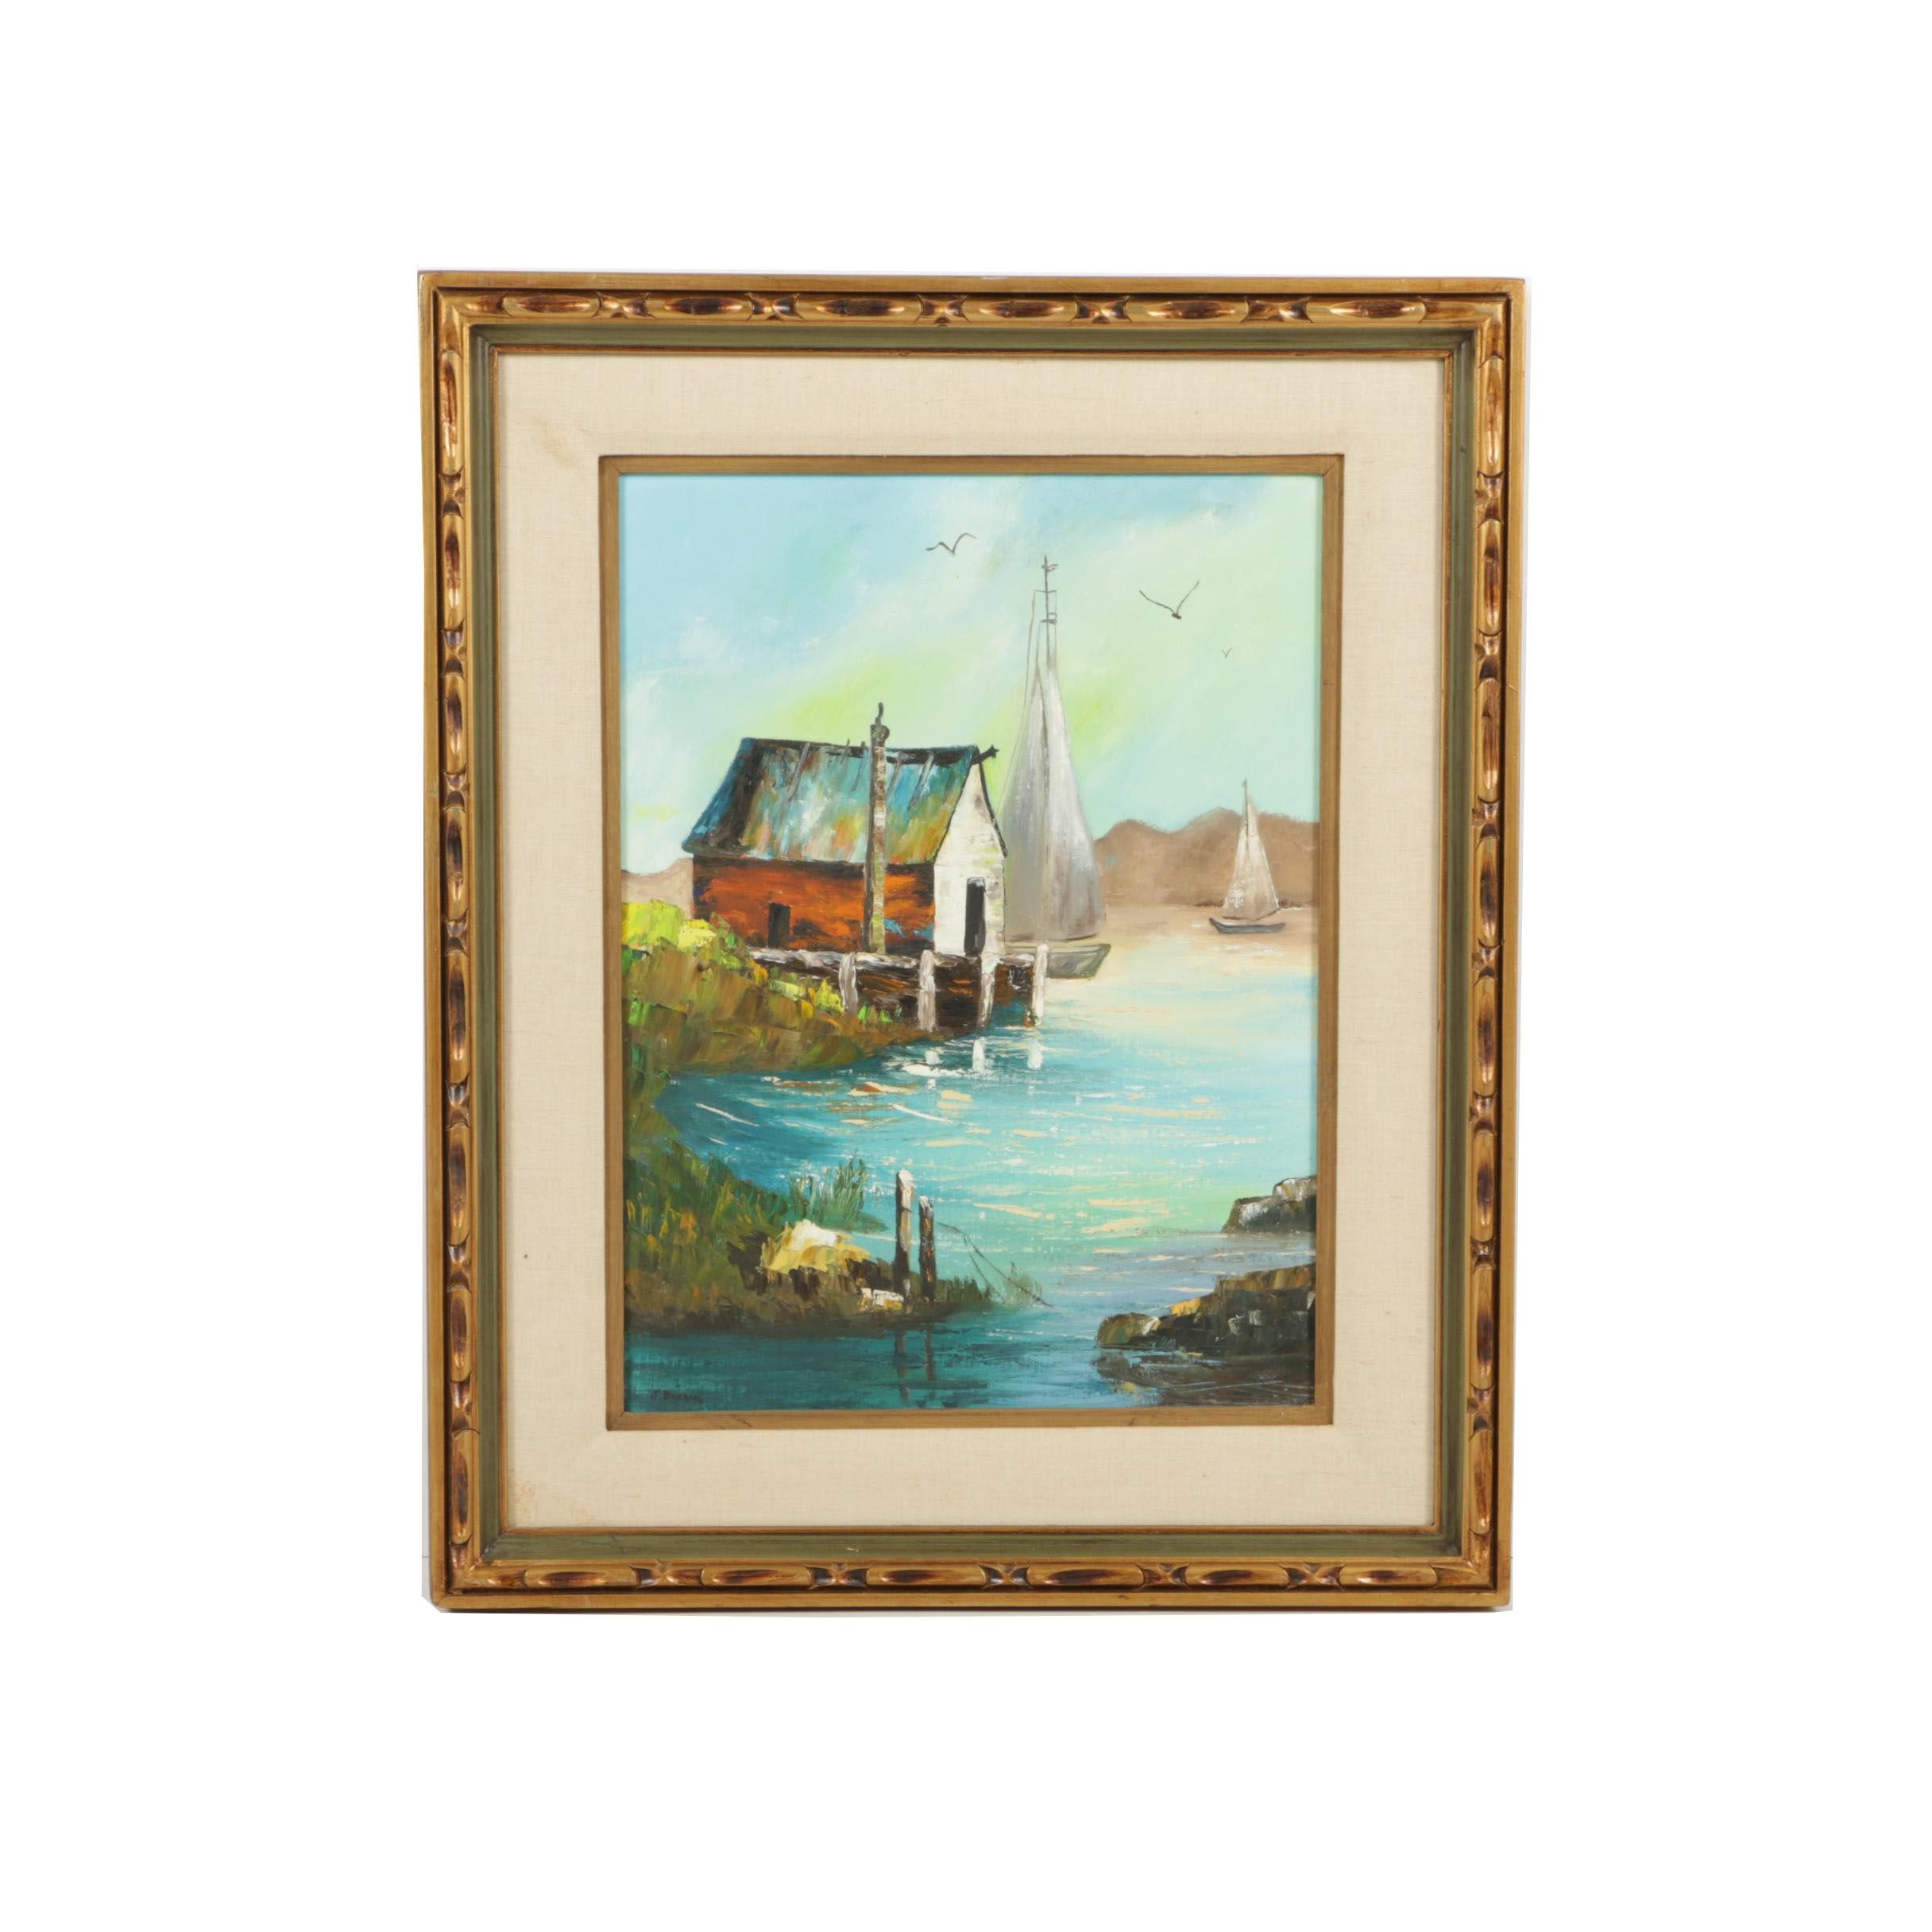 J. Benham Oil Painting of a Sea Scene